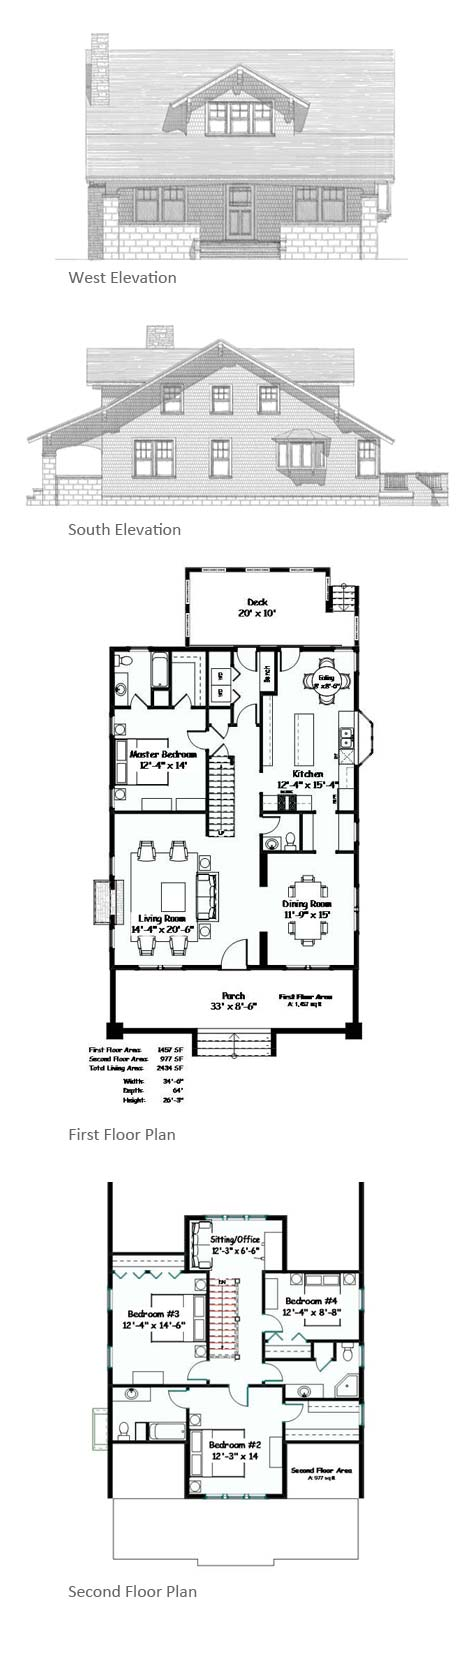 Liberty Cottage elevations and floor plans